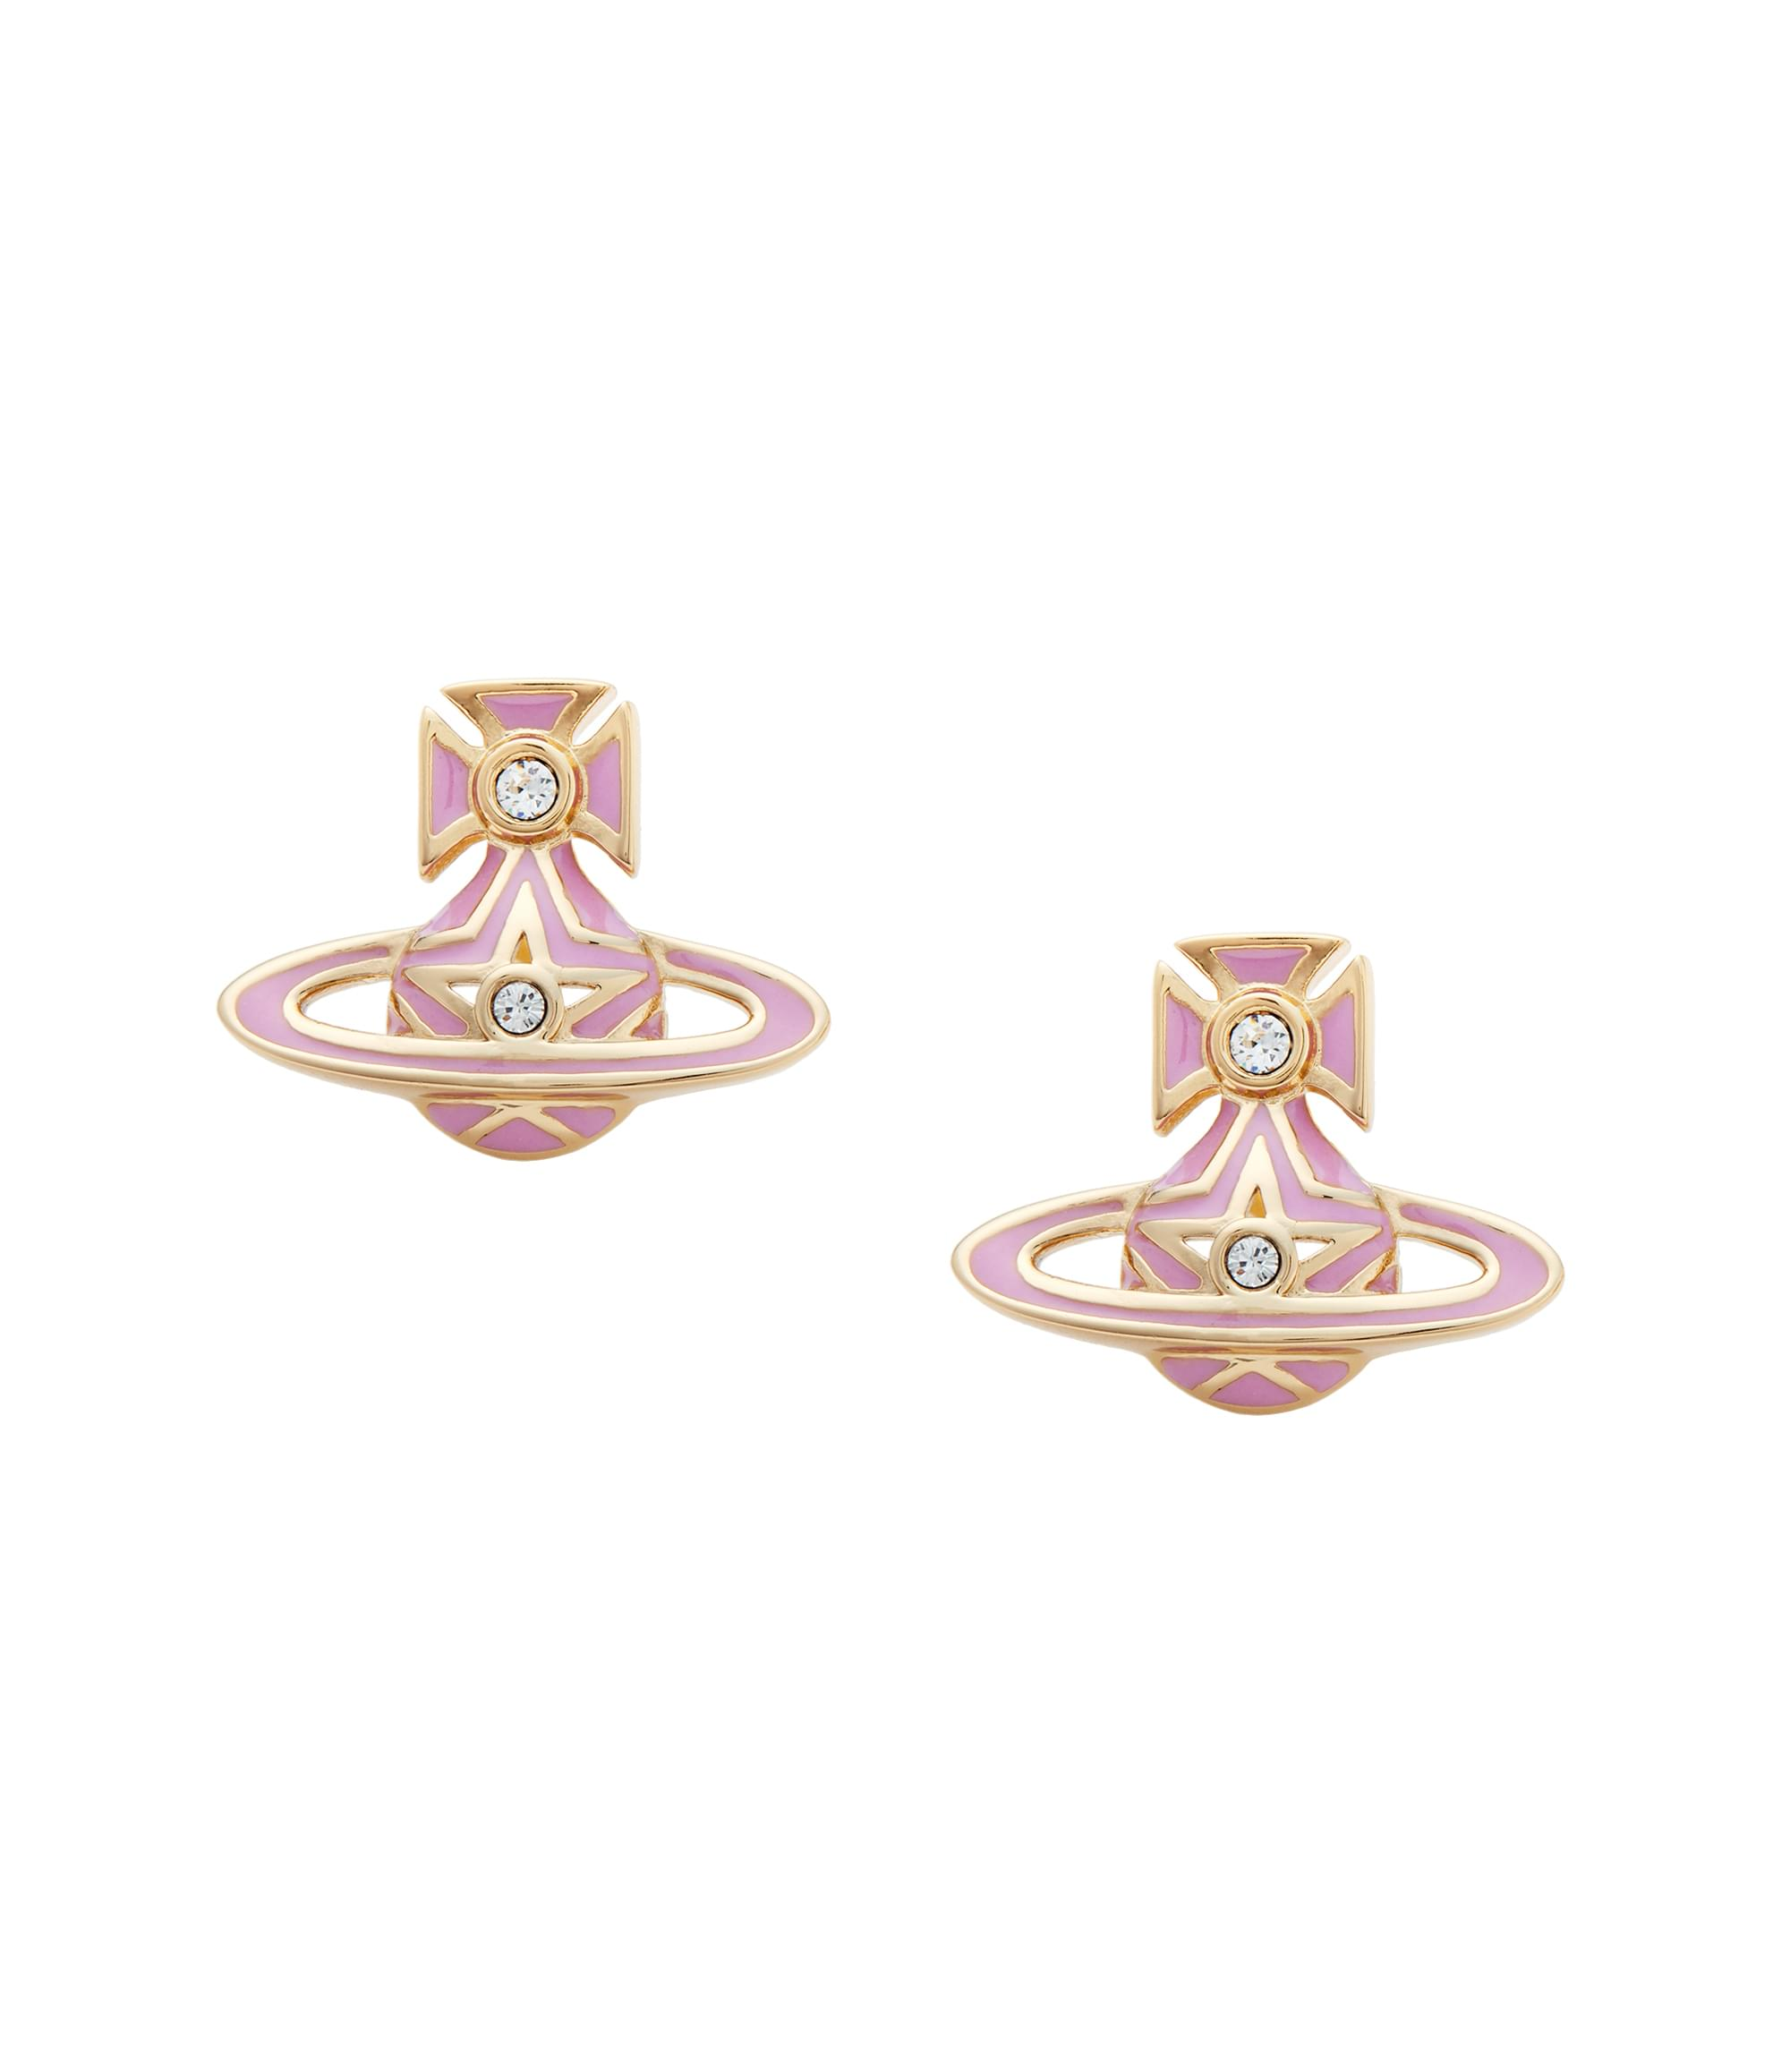 Vivienne Westwood Pink Brianna Bas Relief Earrings